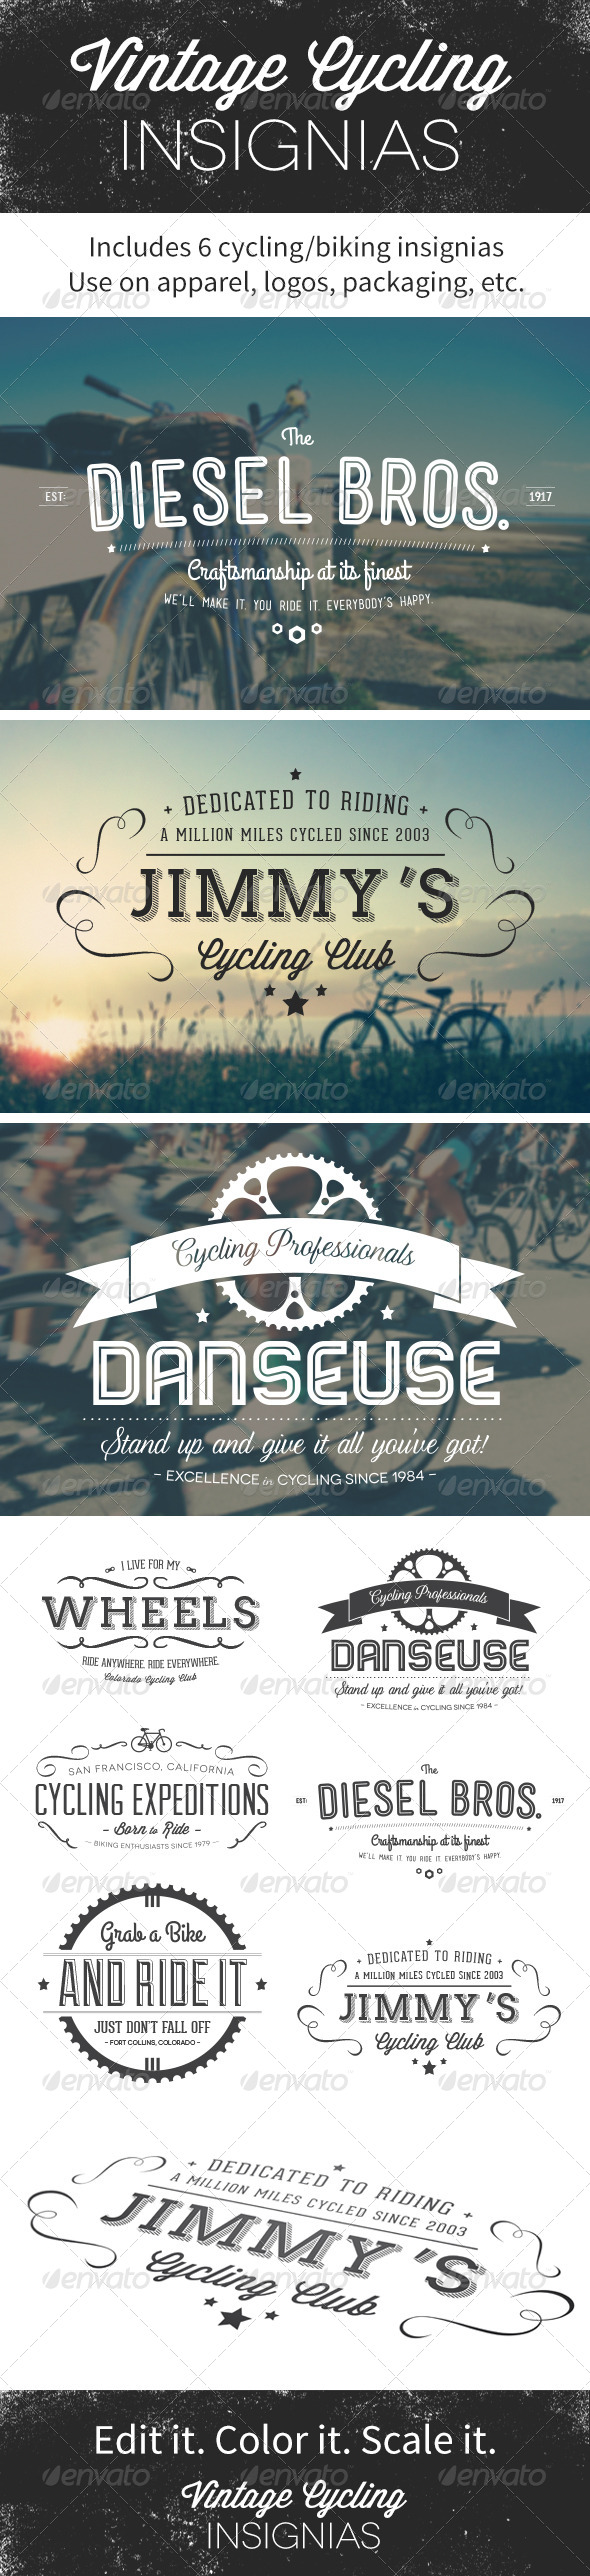 Vintage Cycling Insignias | Logos - Miscellaneous Characters